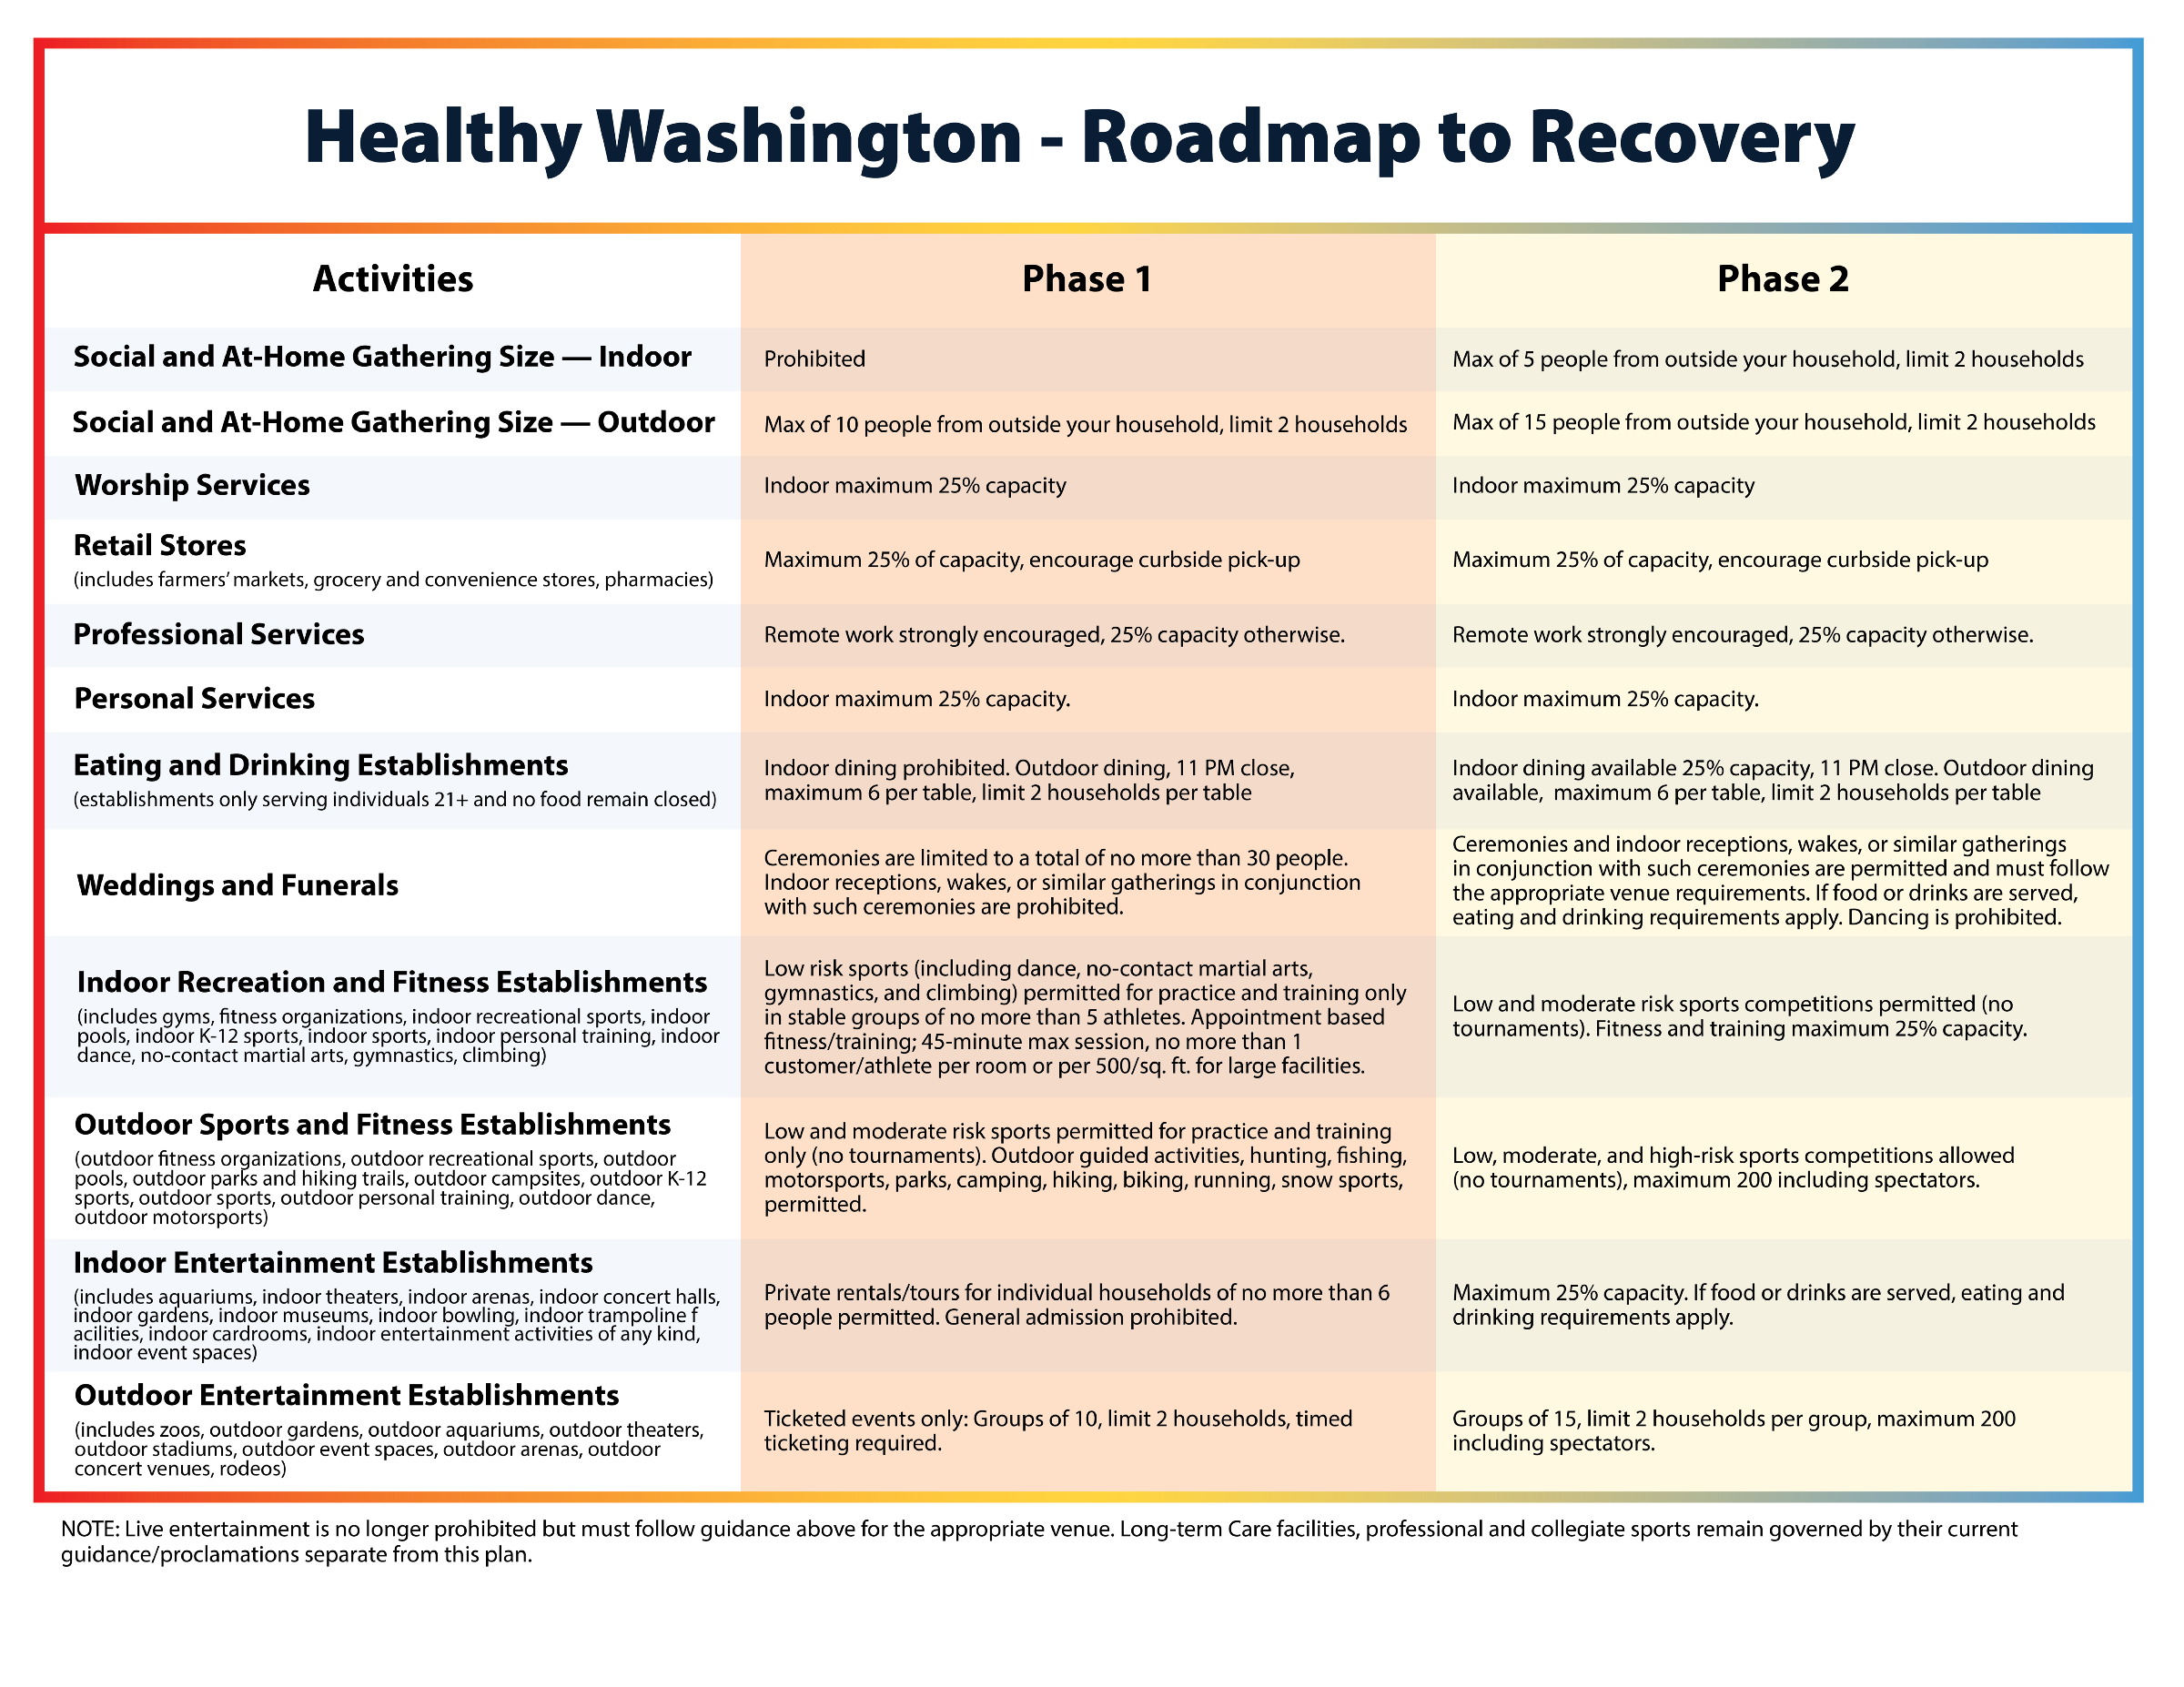 washington phased reopening, road to recovery map, washington road to recovery, inslee covid-19, covid-19 restrictions, inslee restrictions, covid-19 lockdown